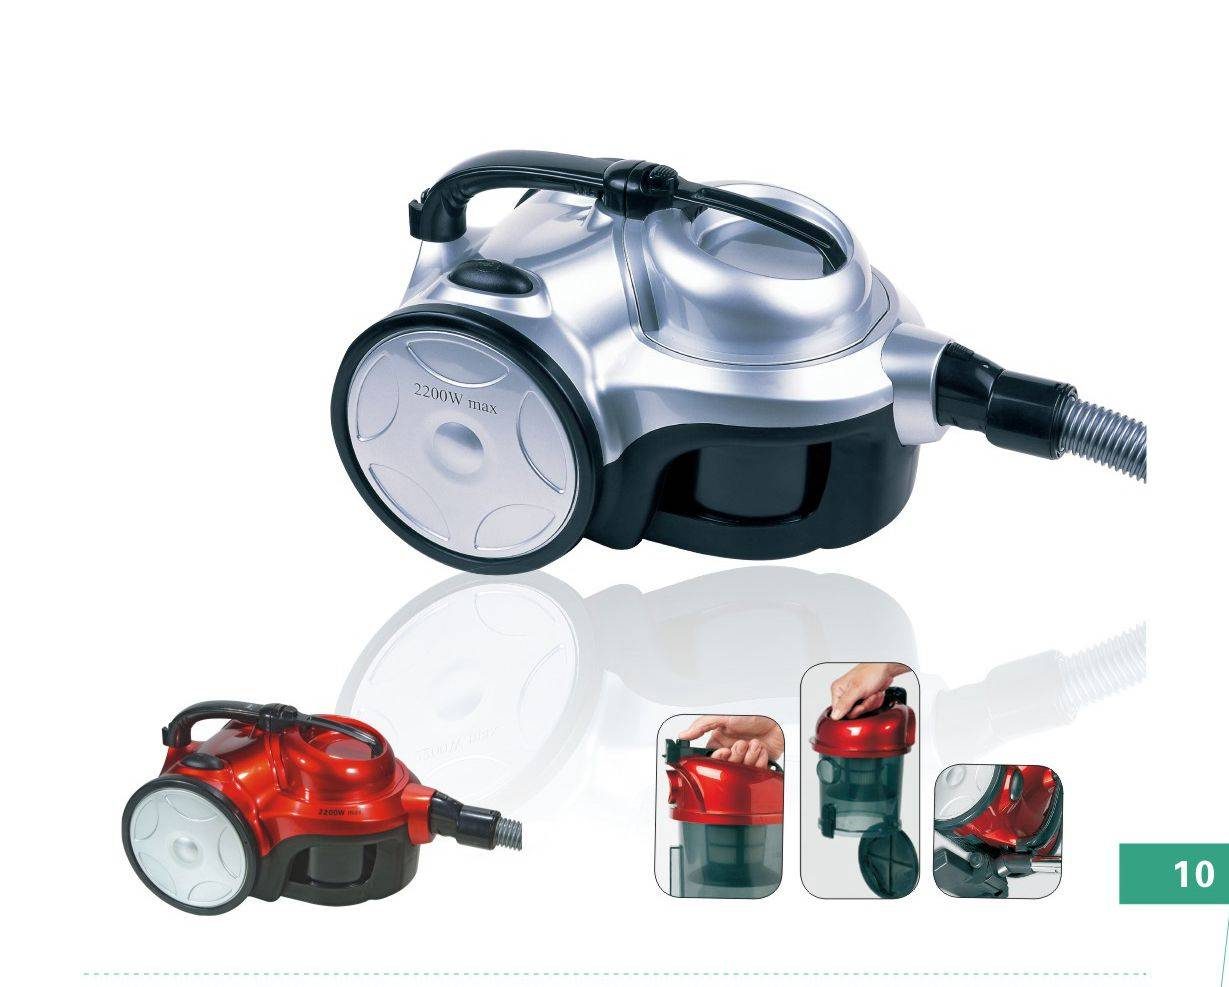 Cyclonic cleaner  DJL-912